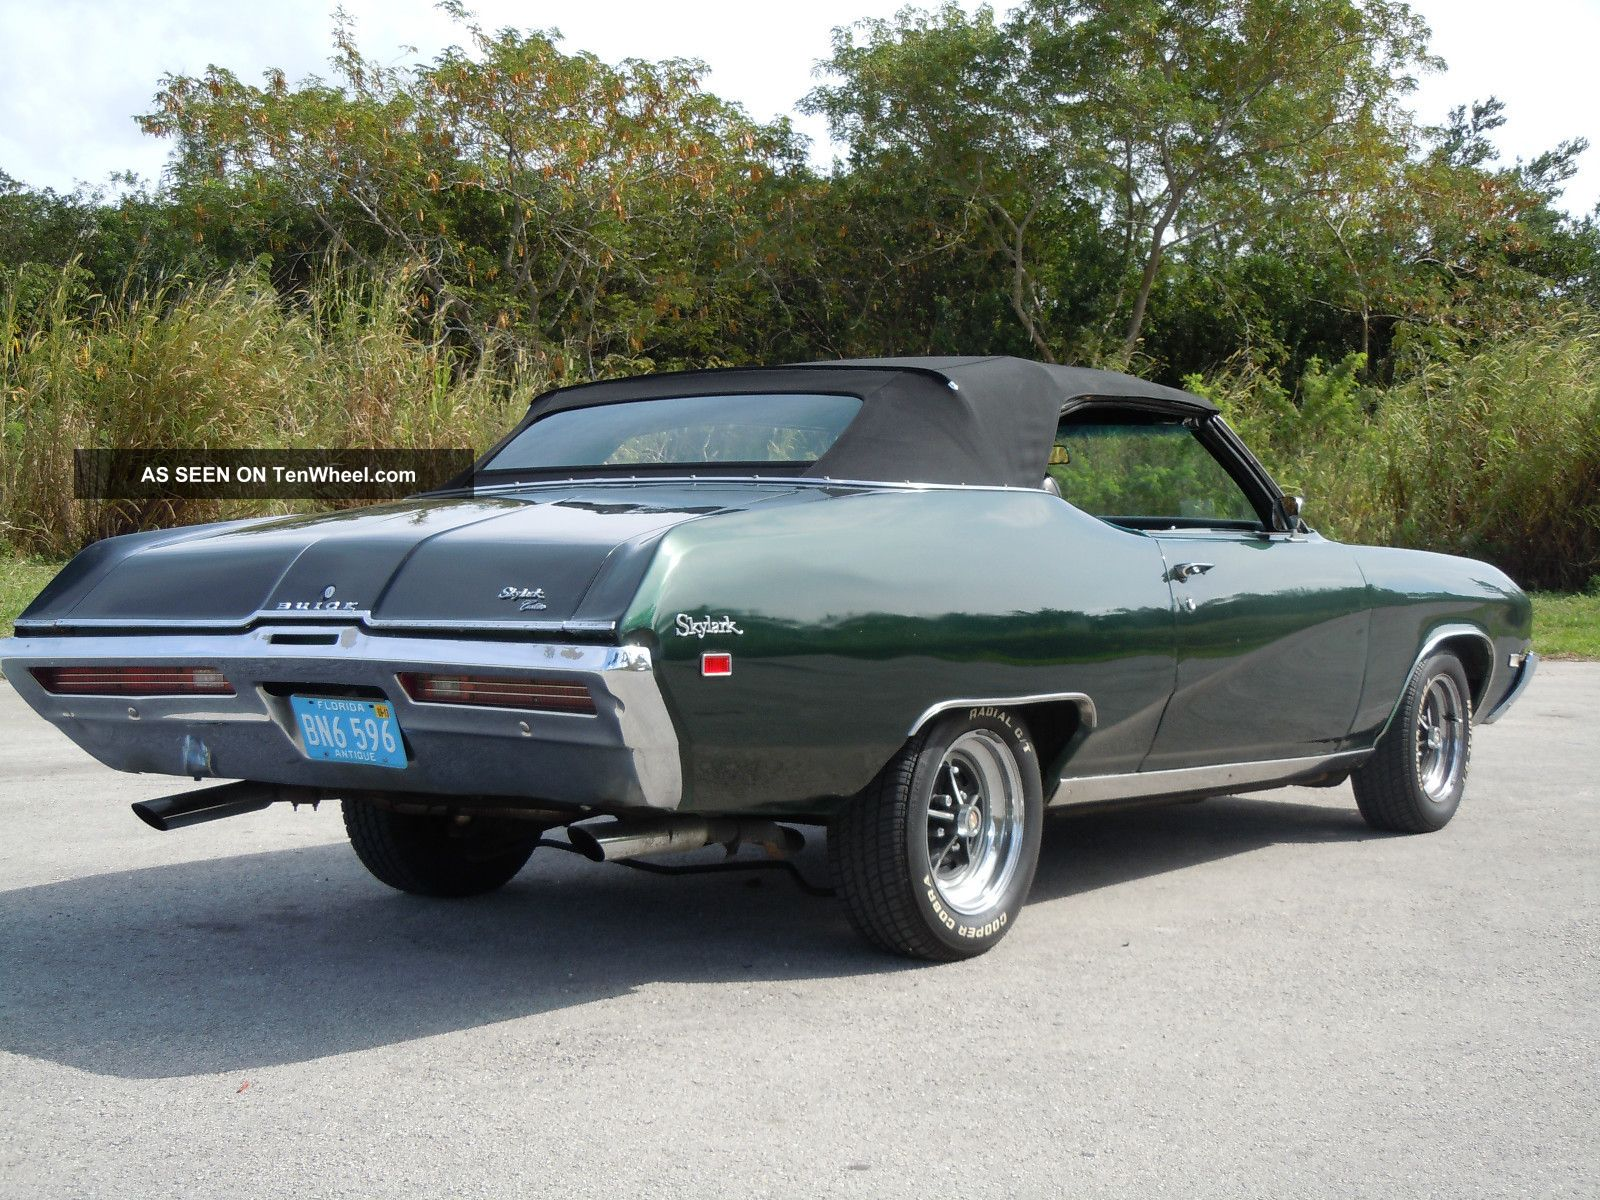 7l Skylark photo 1, 1969 Buick Skylark Custom Convertible 2 - Door 5.